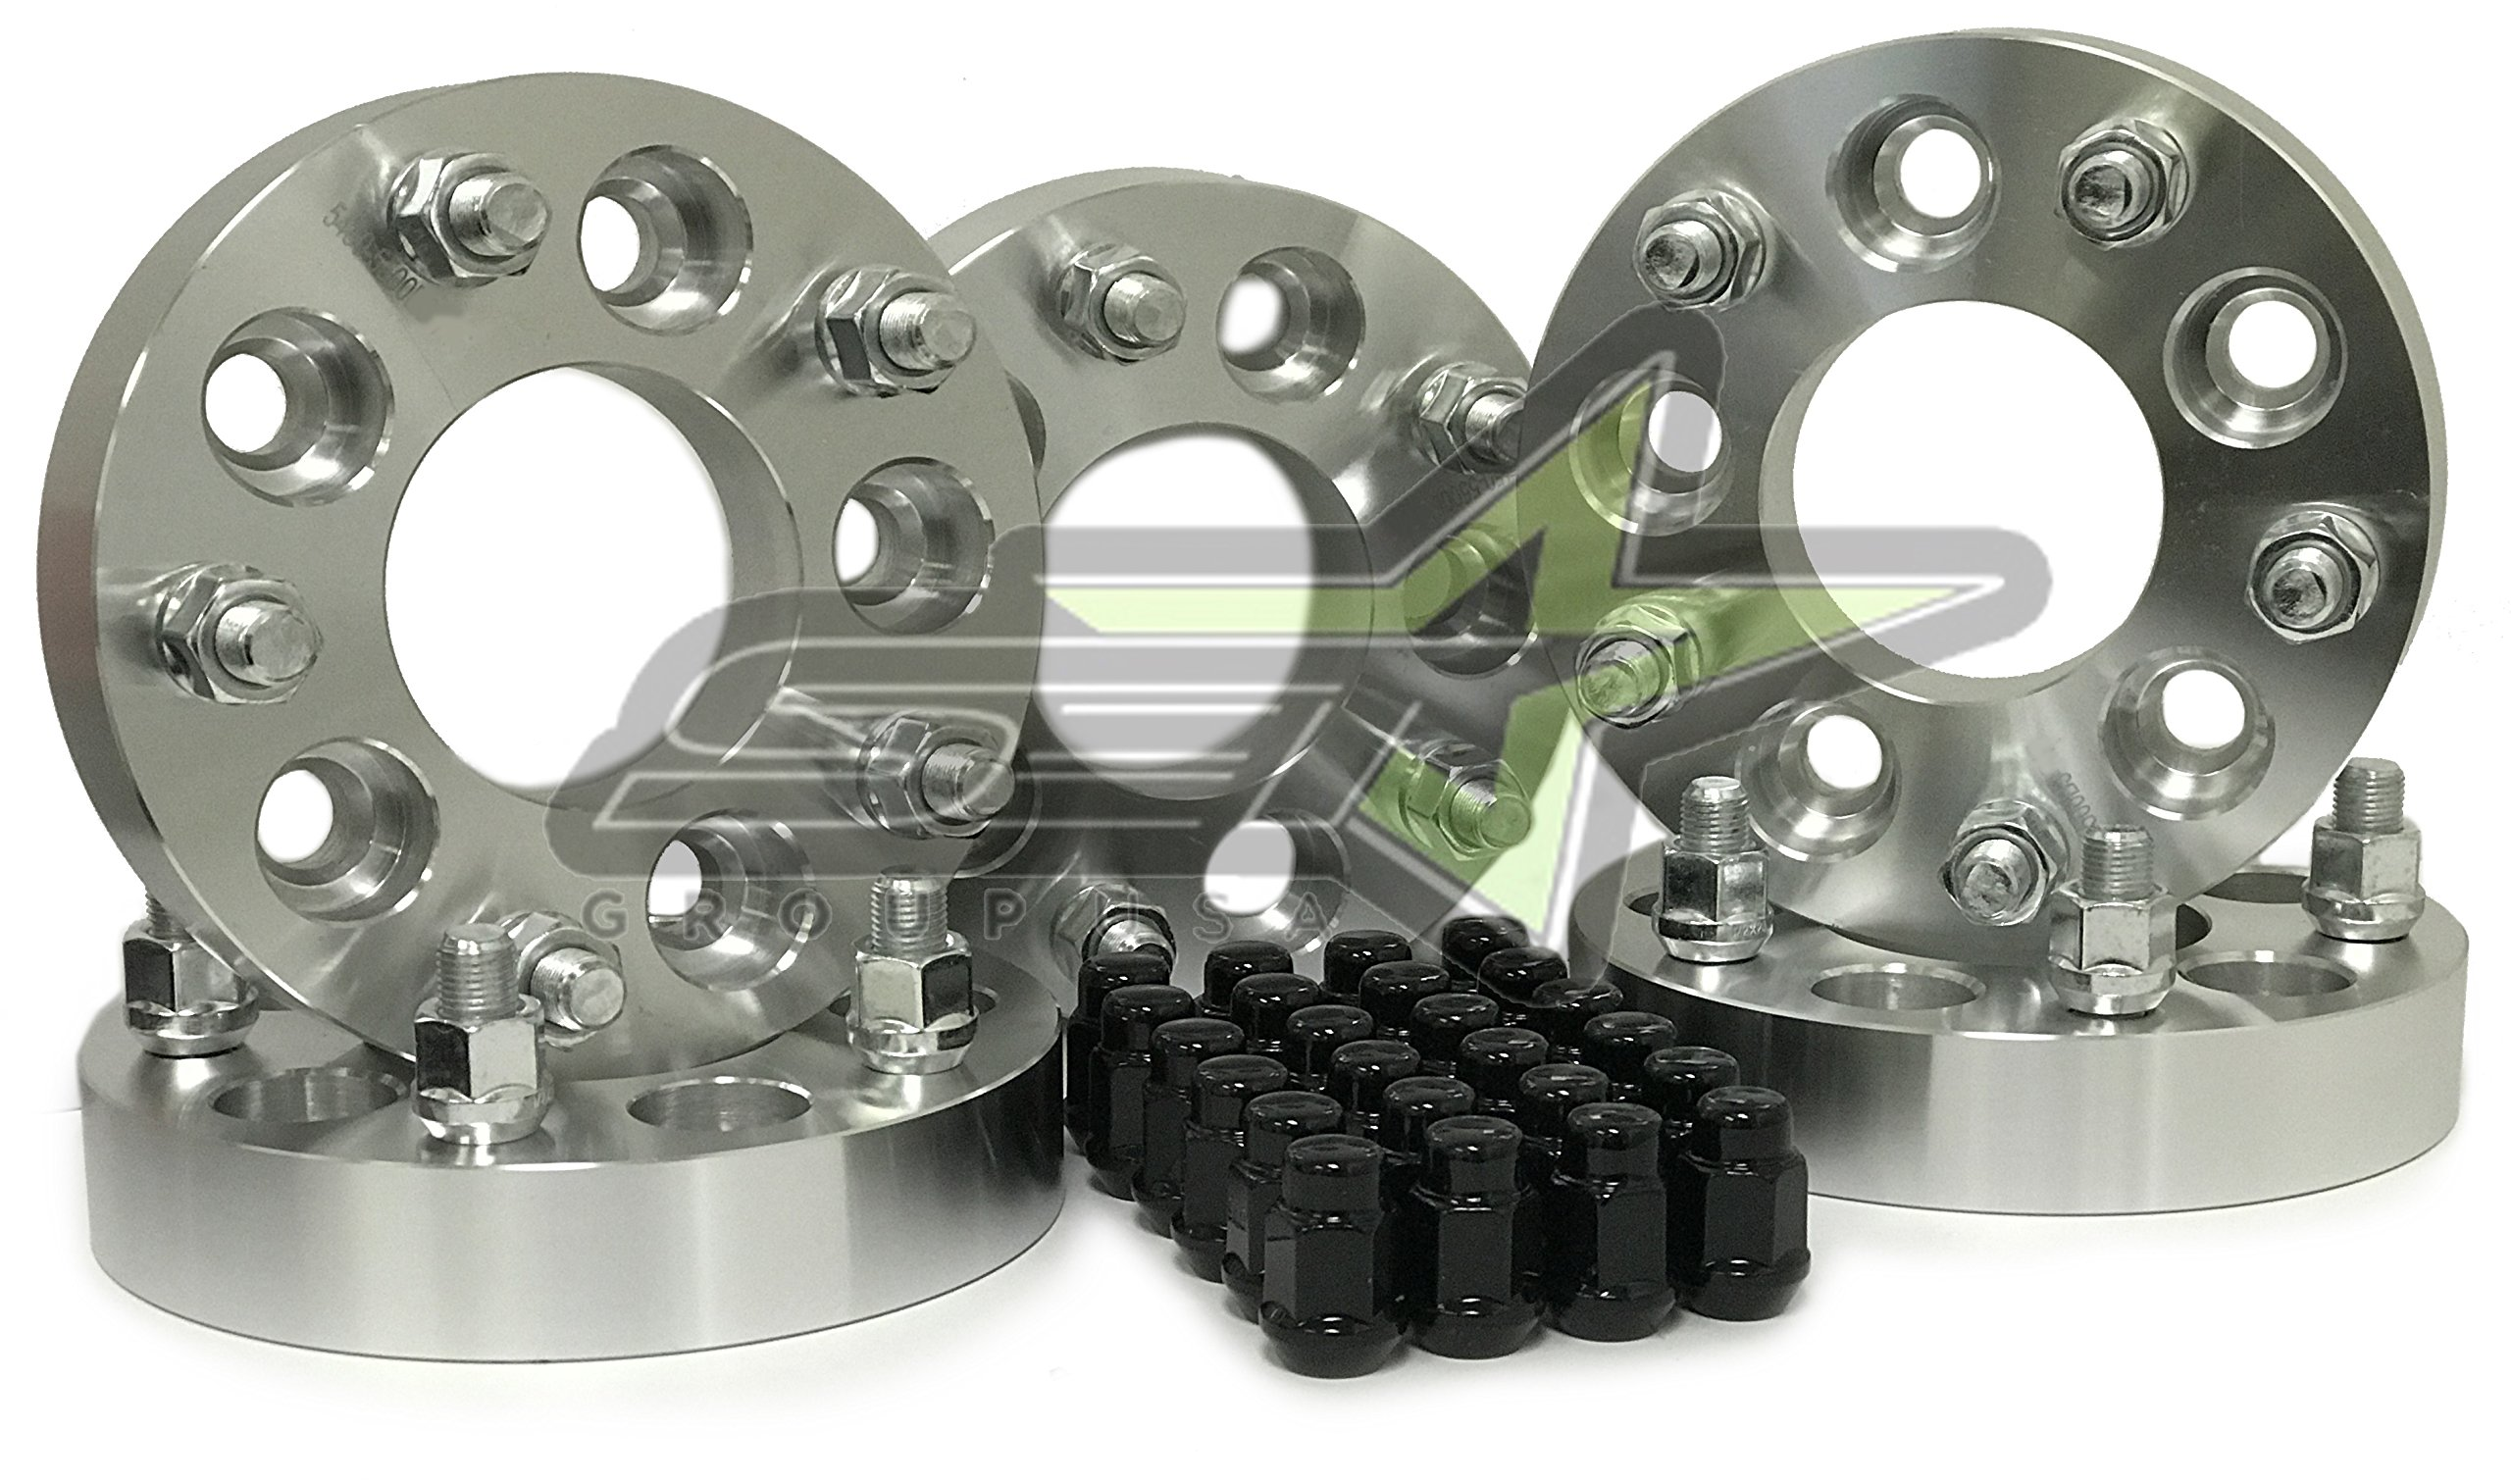 5 Wheel Adapters 5x4.5 to 5x5 1.25''(32mm) - Adapts Jeep Jk Wheels on Tj Yj Kk Sj Xj Mj (Set of 5) + 25 Chrome Accorn Lug Nuts